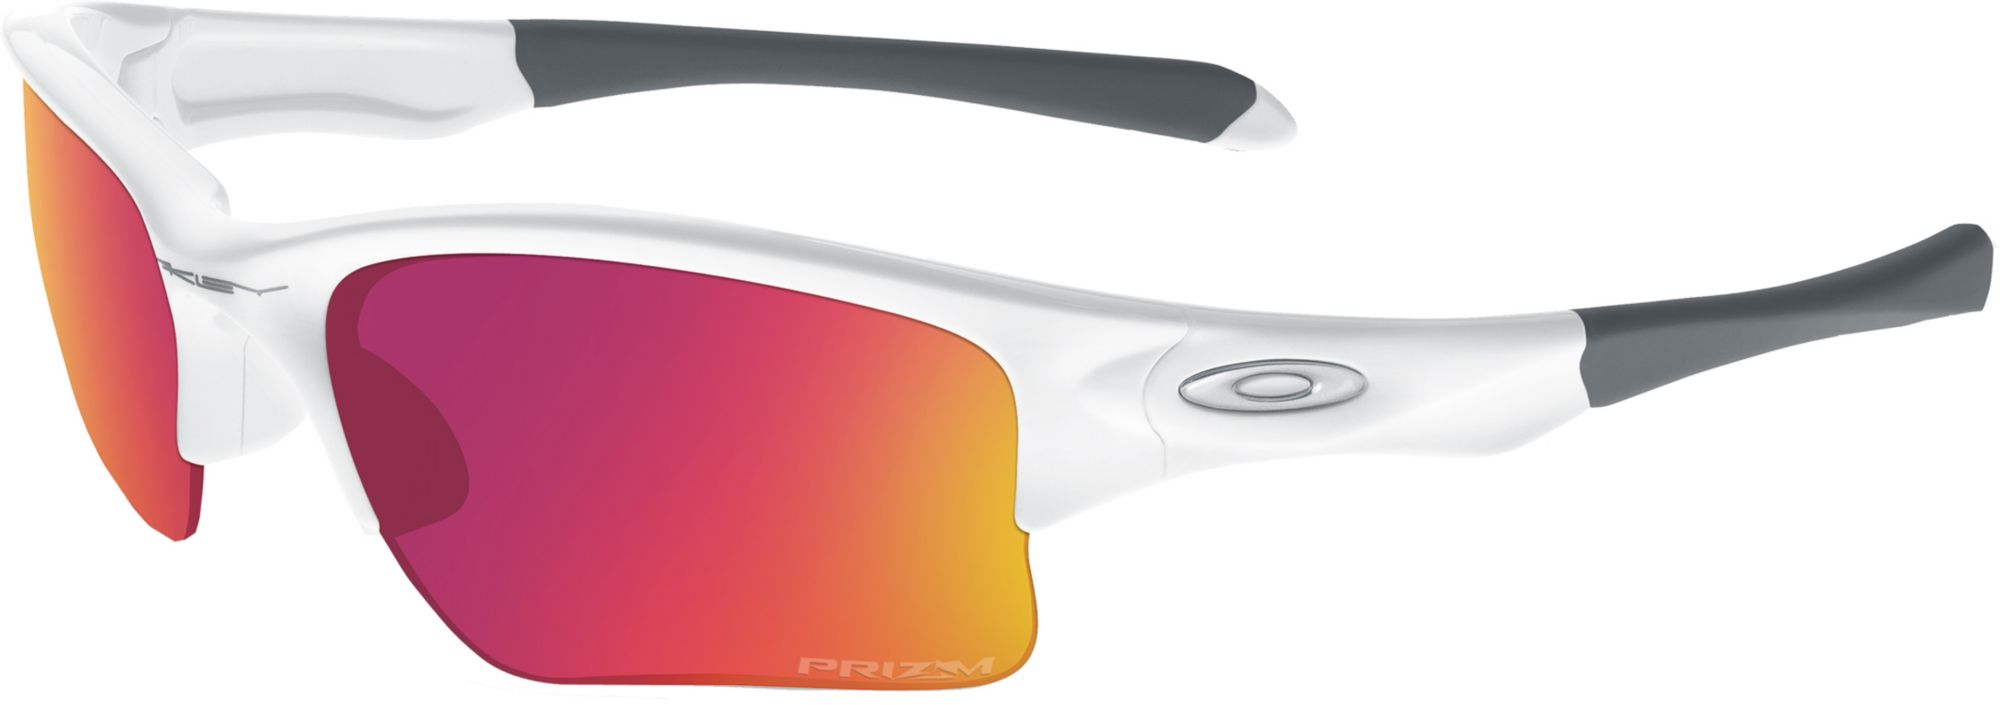 cheap youth oakley sunglasses ue7w  noImageFound ???